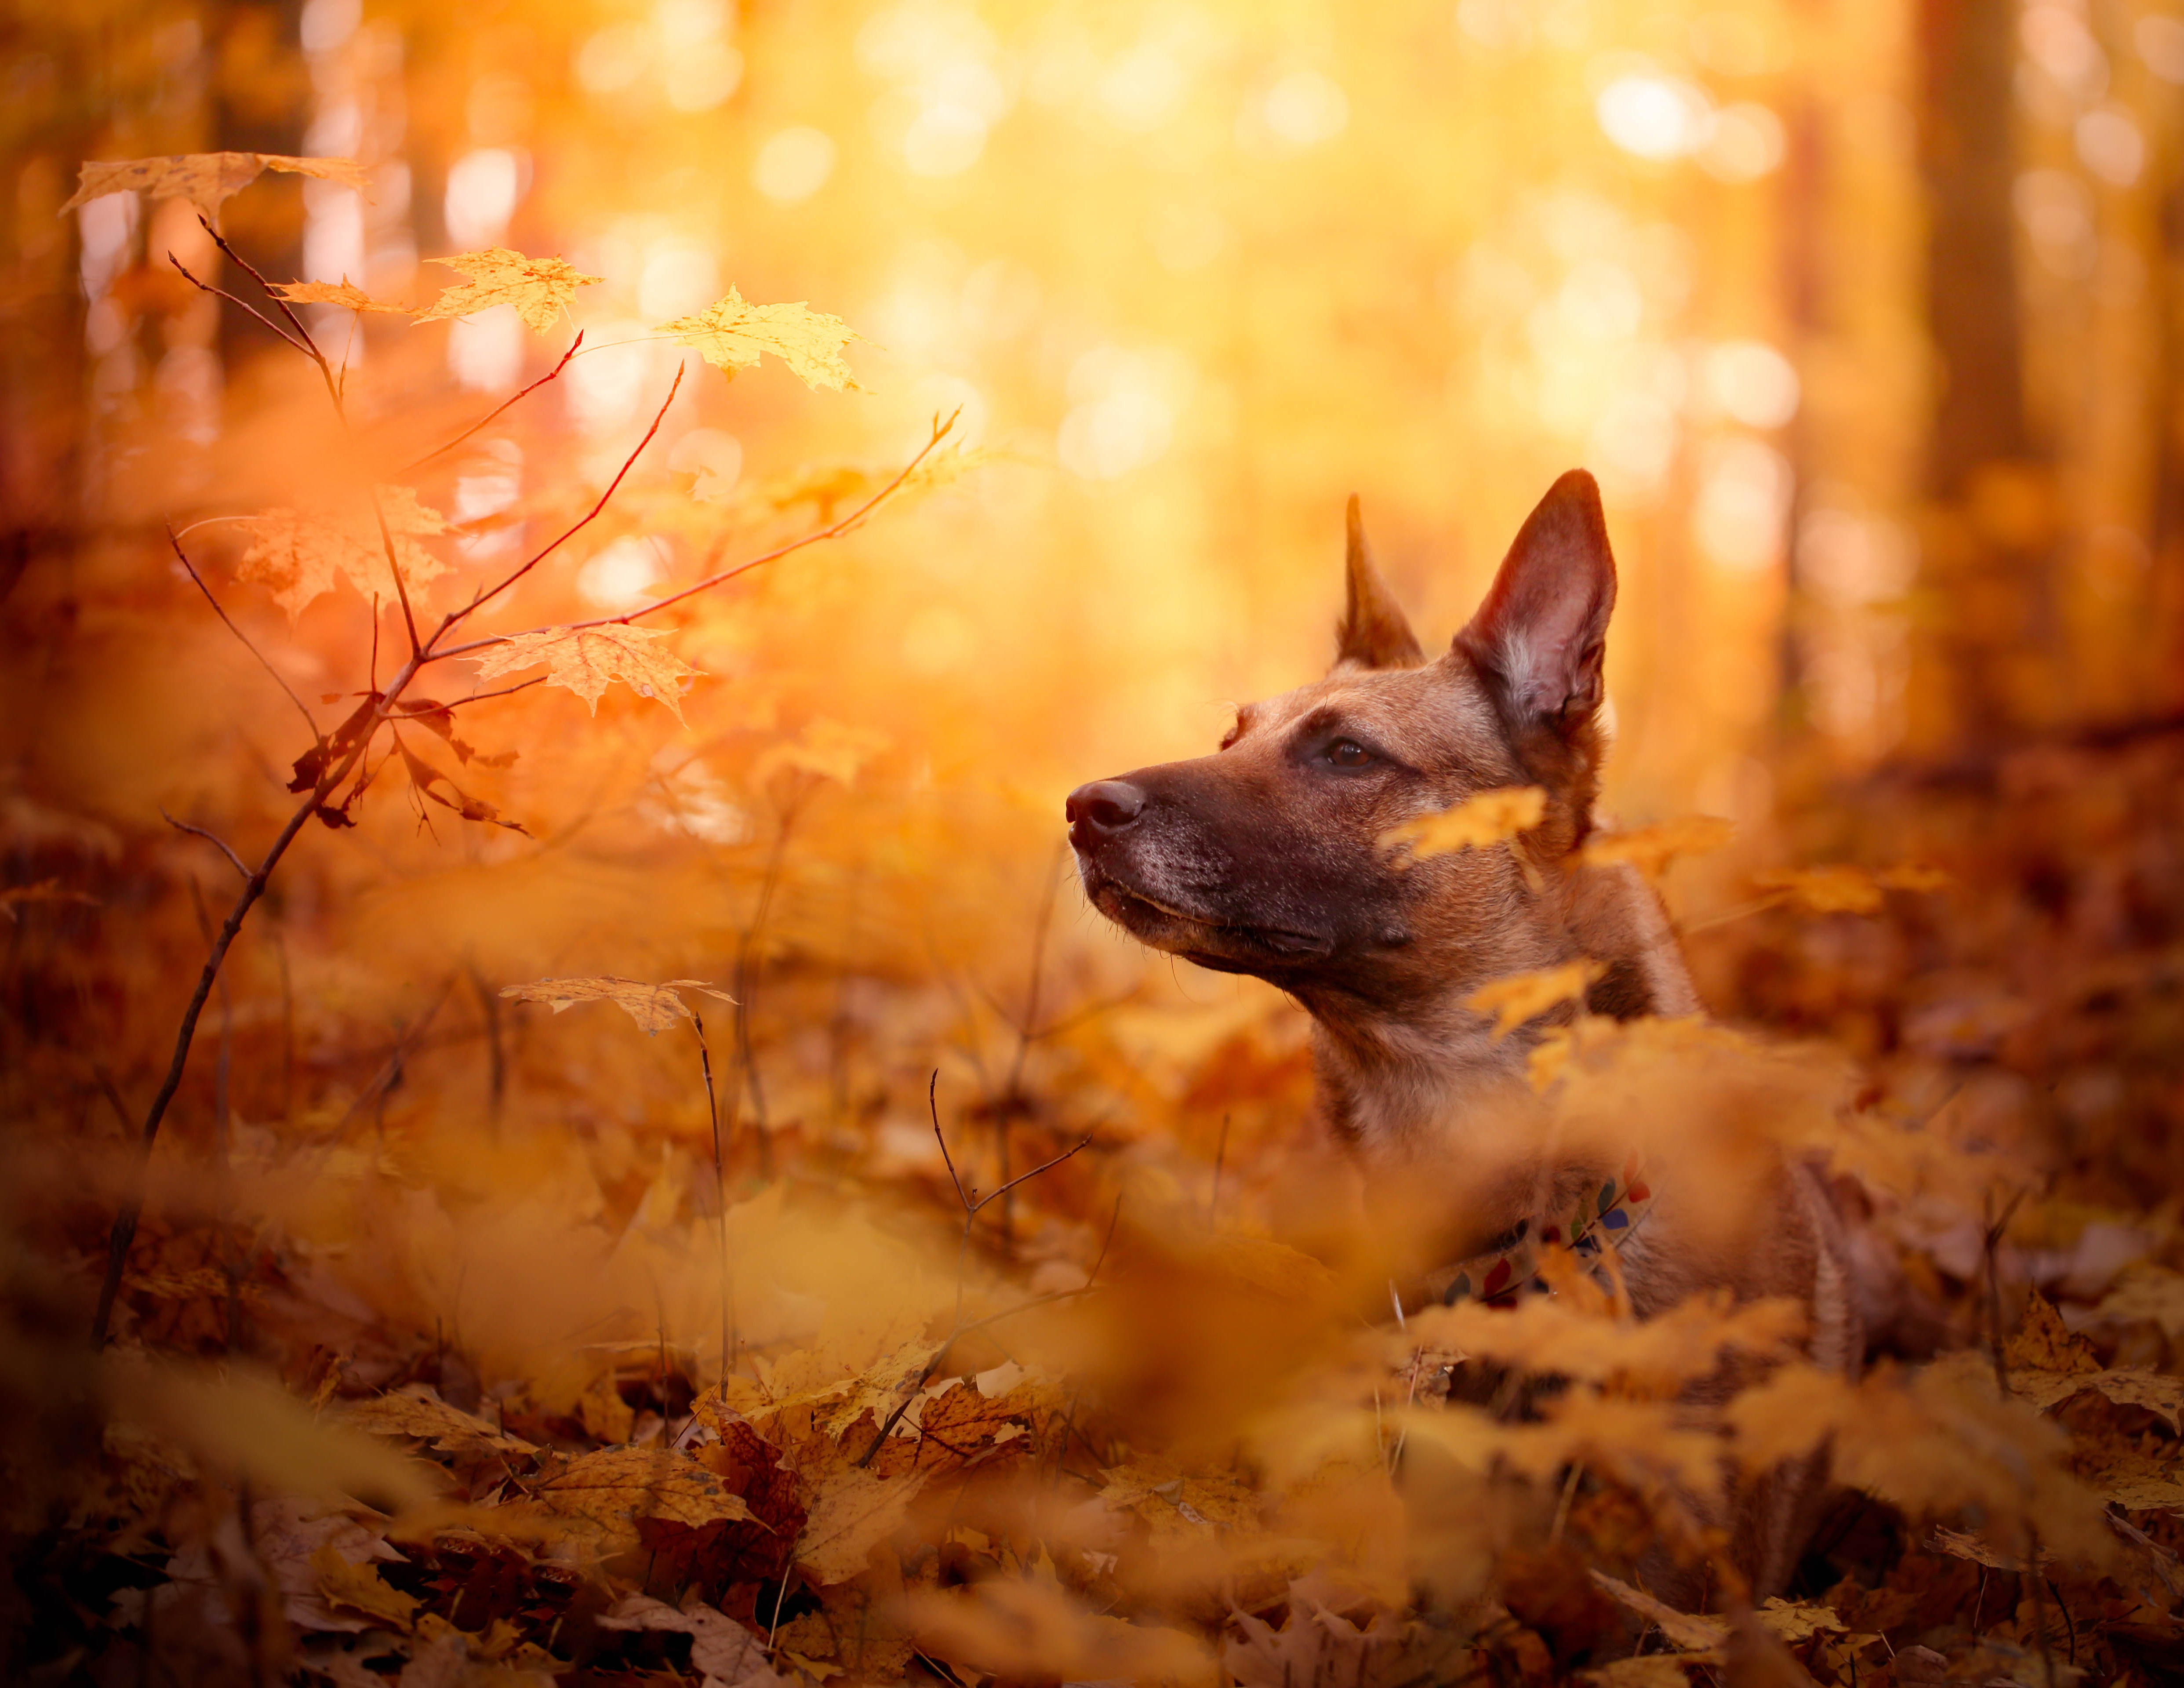 Autumn Fall Wallpaper 1600x900 15 Belgian Malinois Hd Wallpapers Background Images